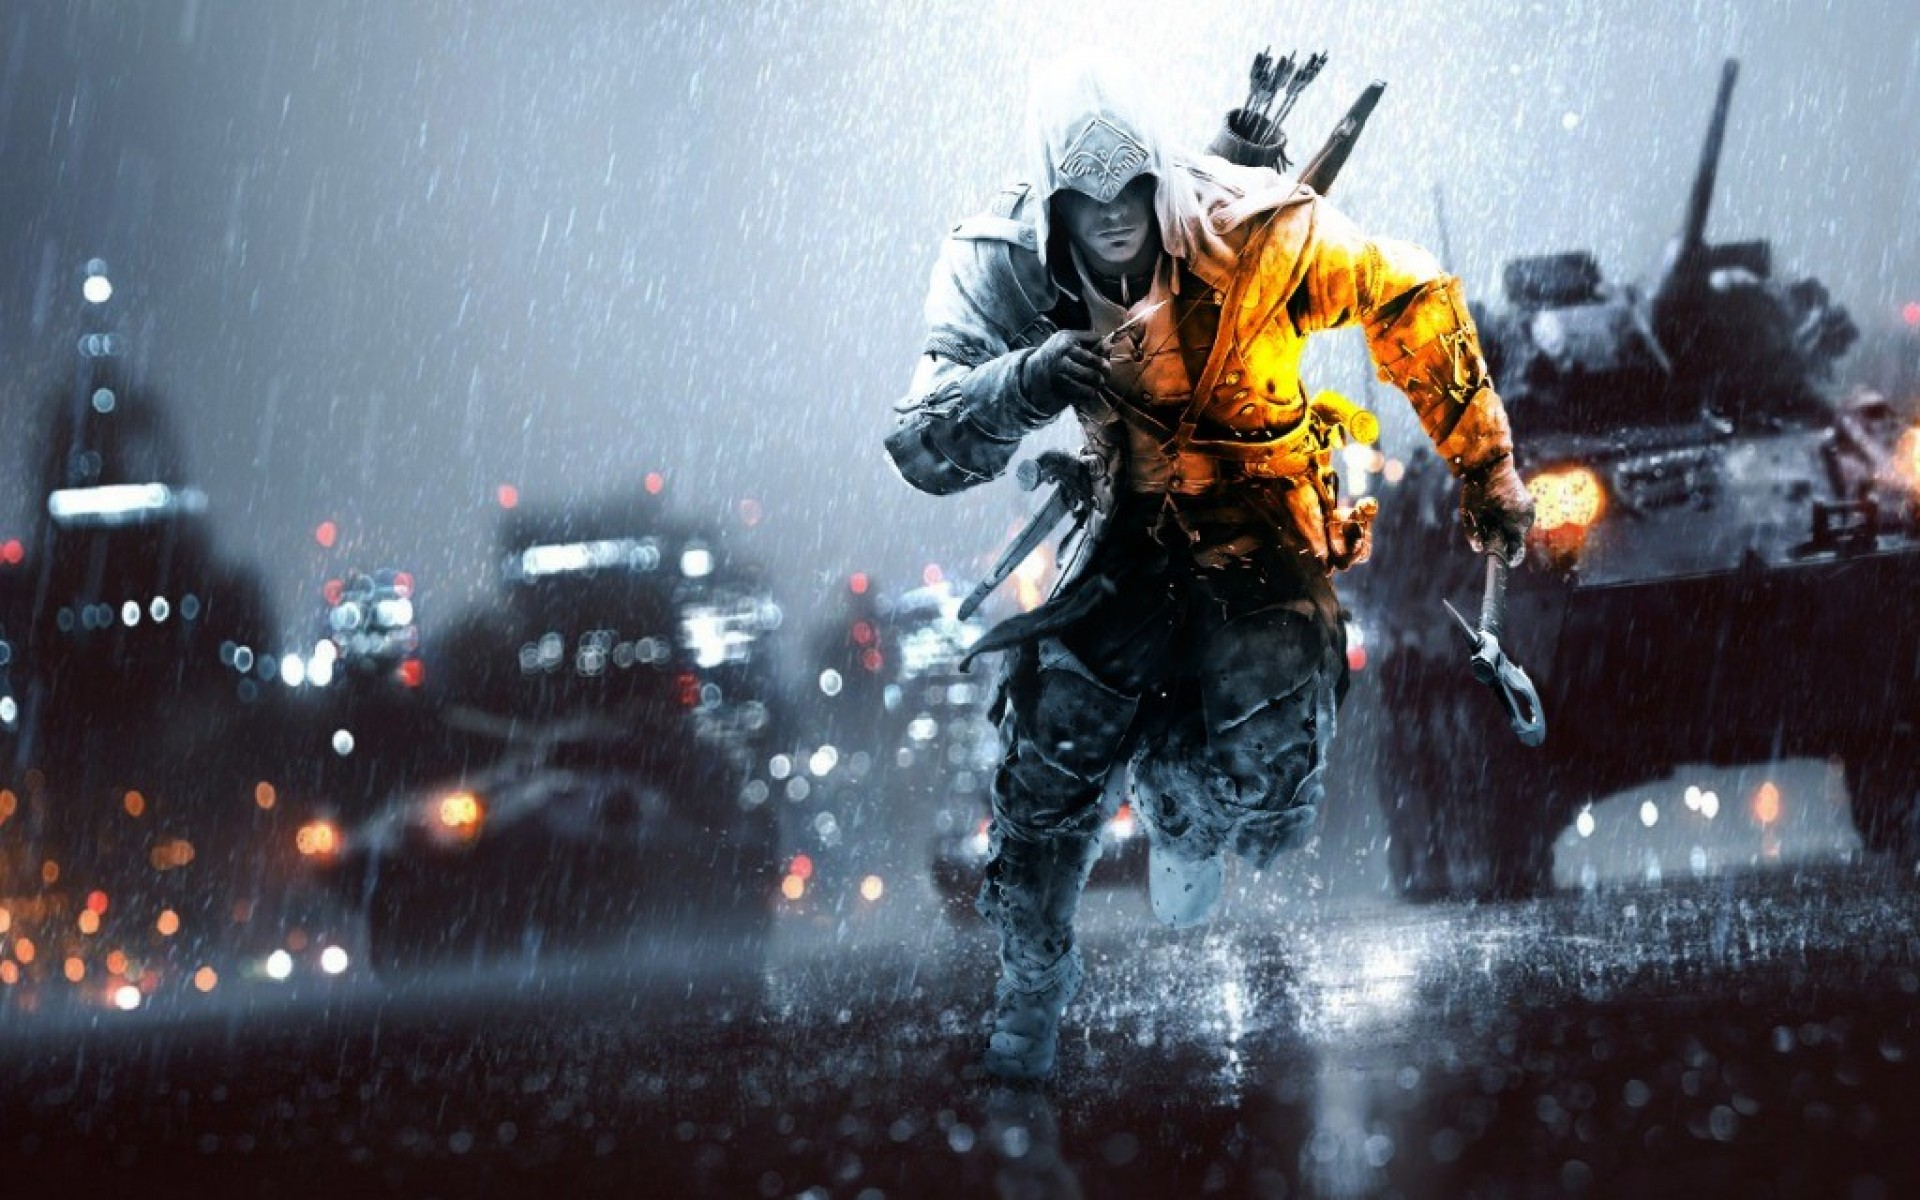 battlefield 4 wallpapers best wallpapers